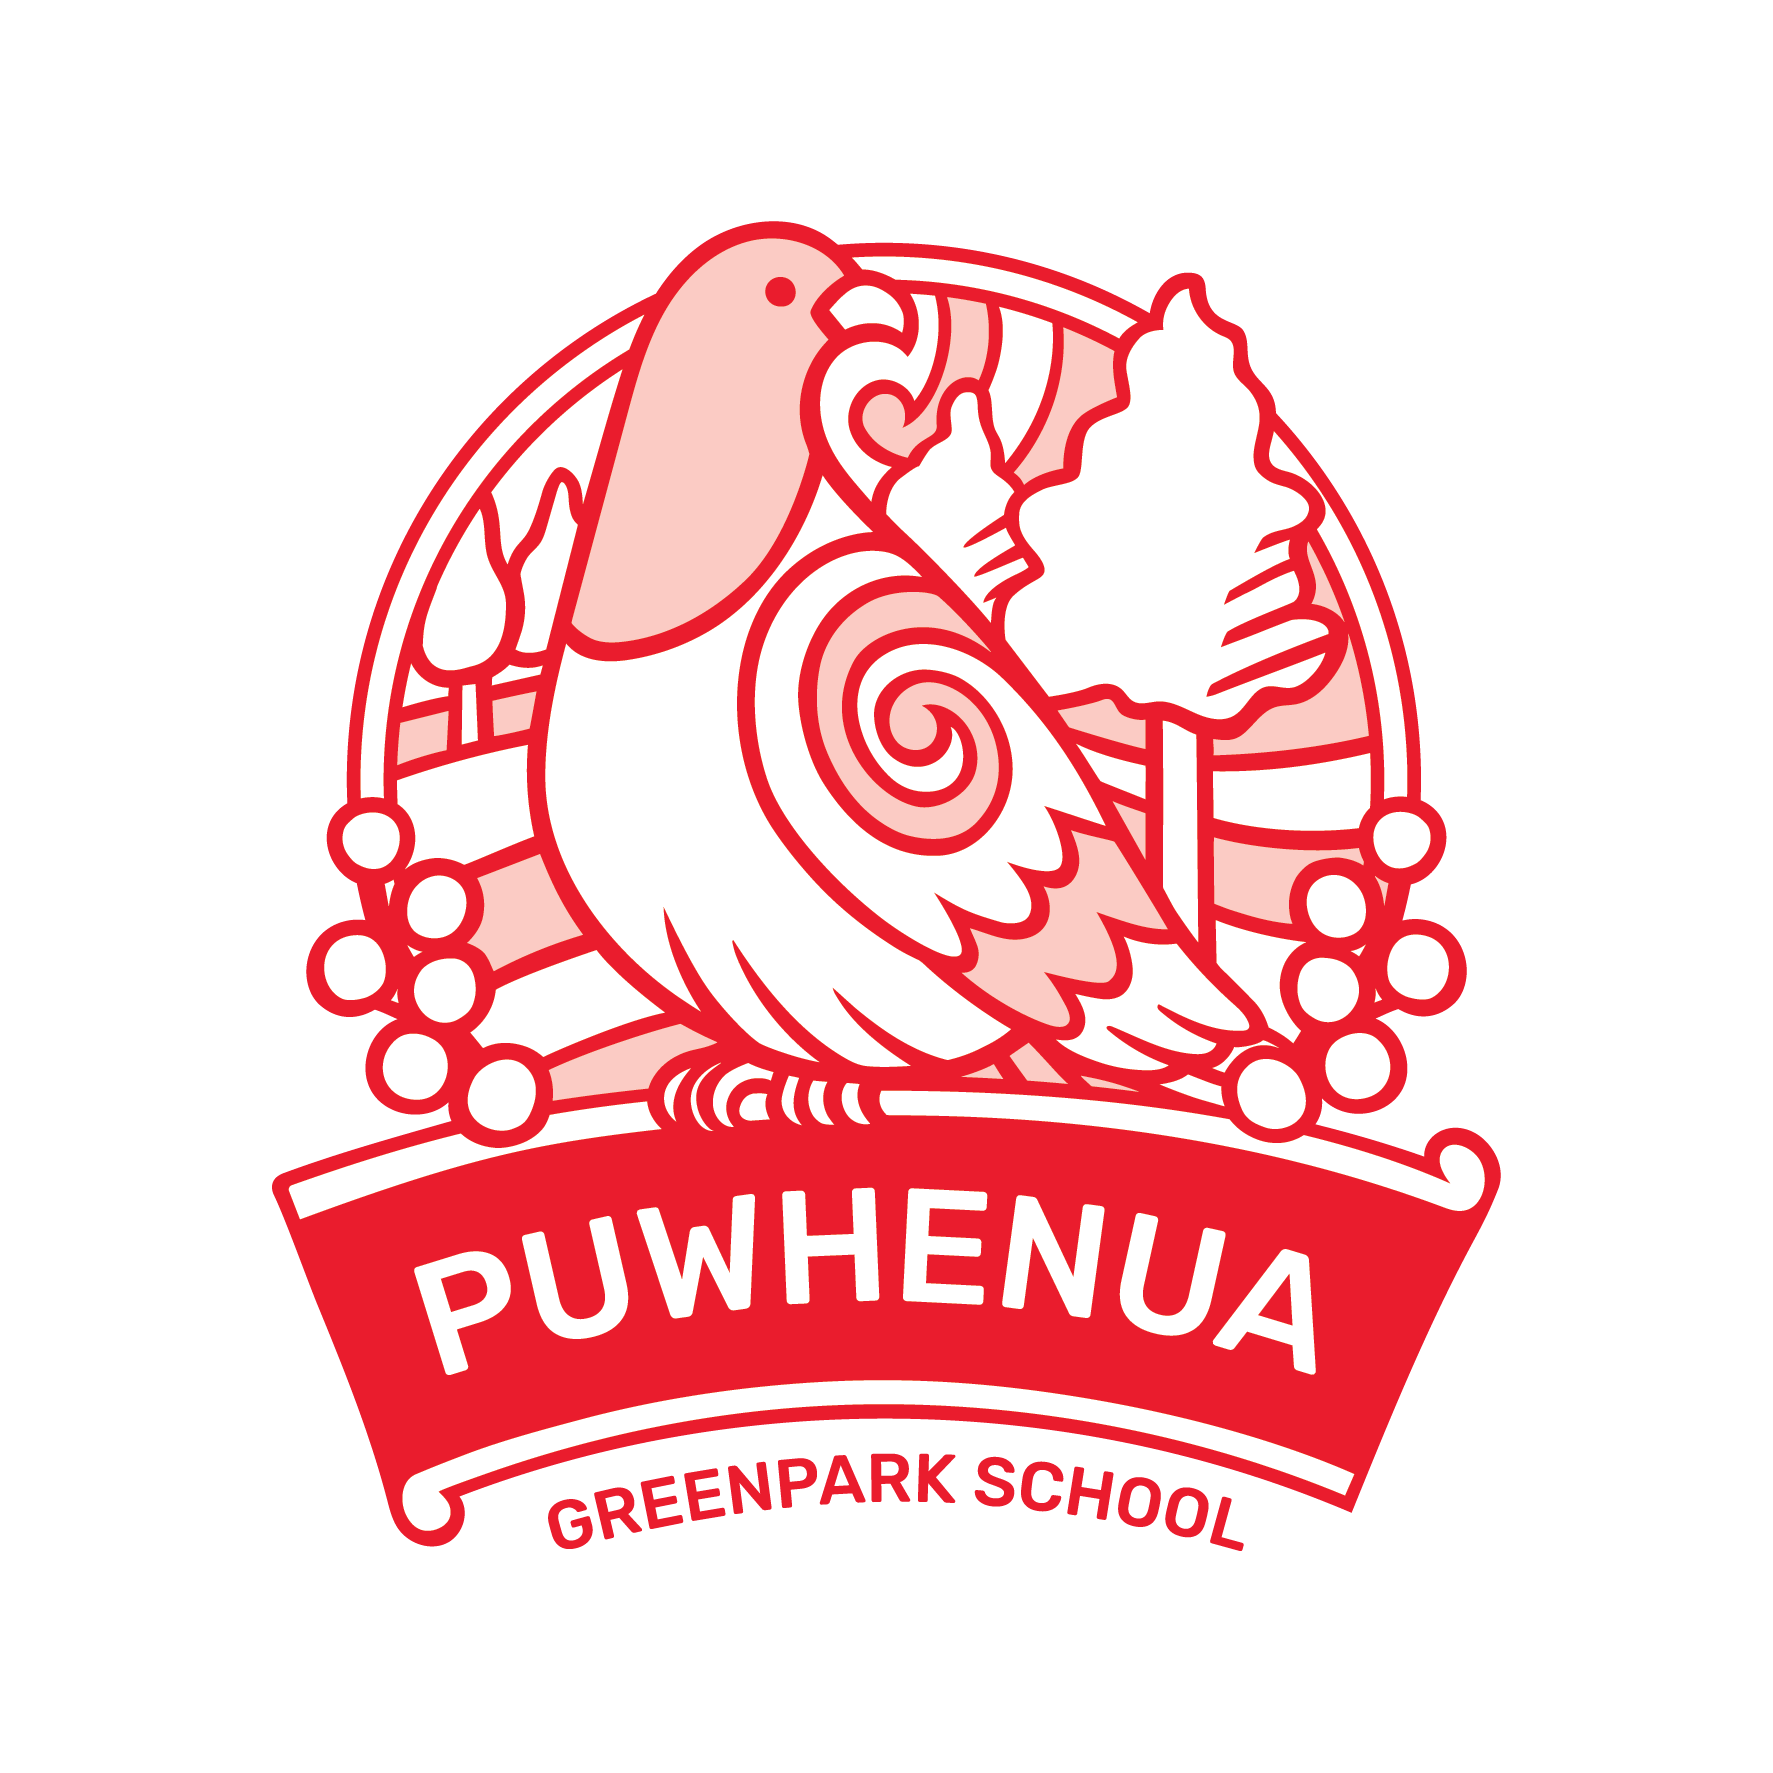 Greenpark School House logo_Puwhenua.png